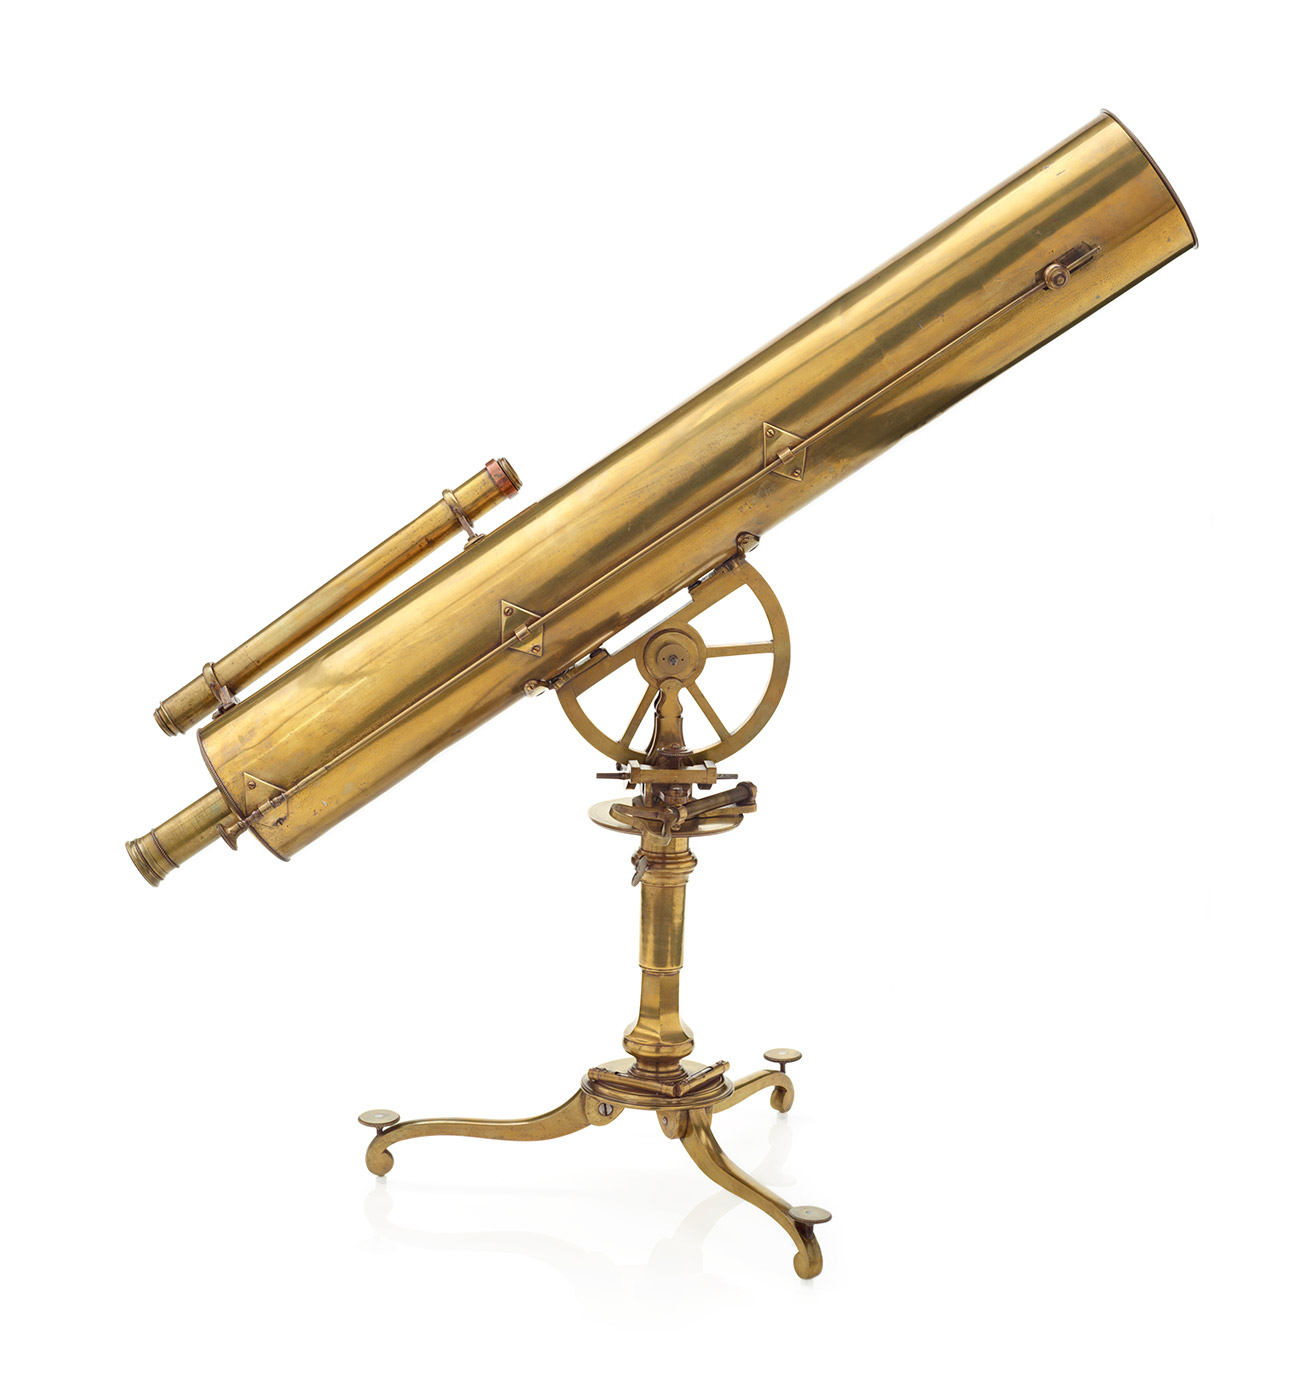 Side view of a brass telescope mounted on a stand with three feet.